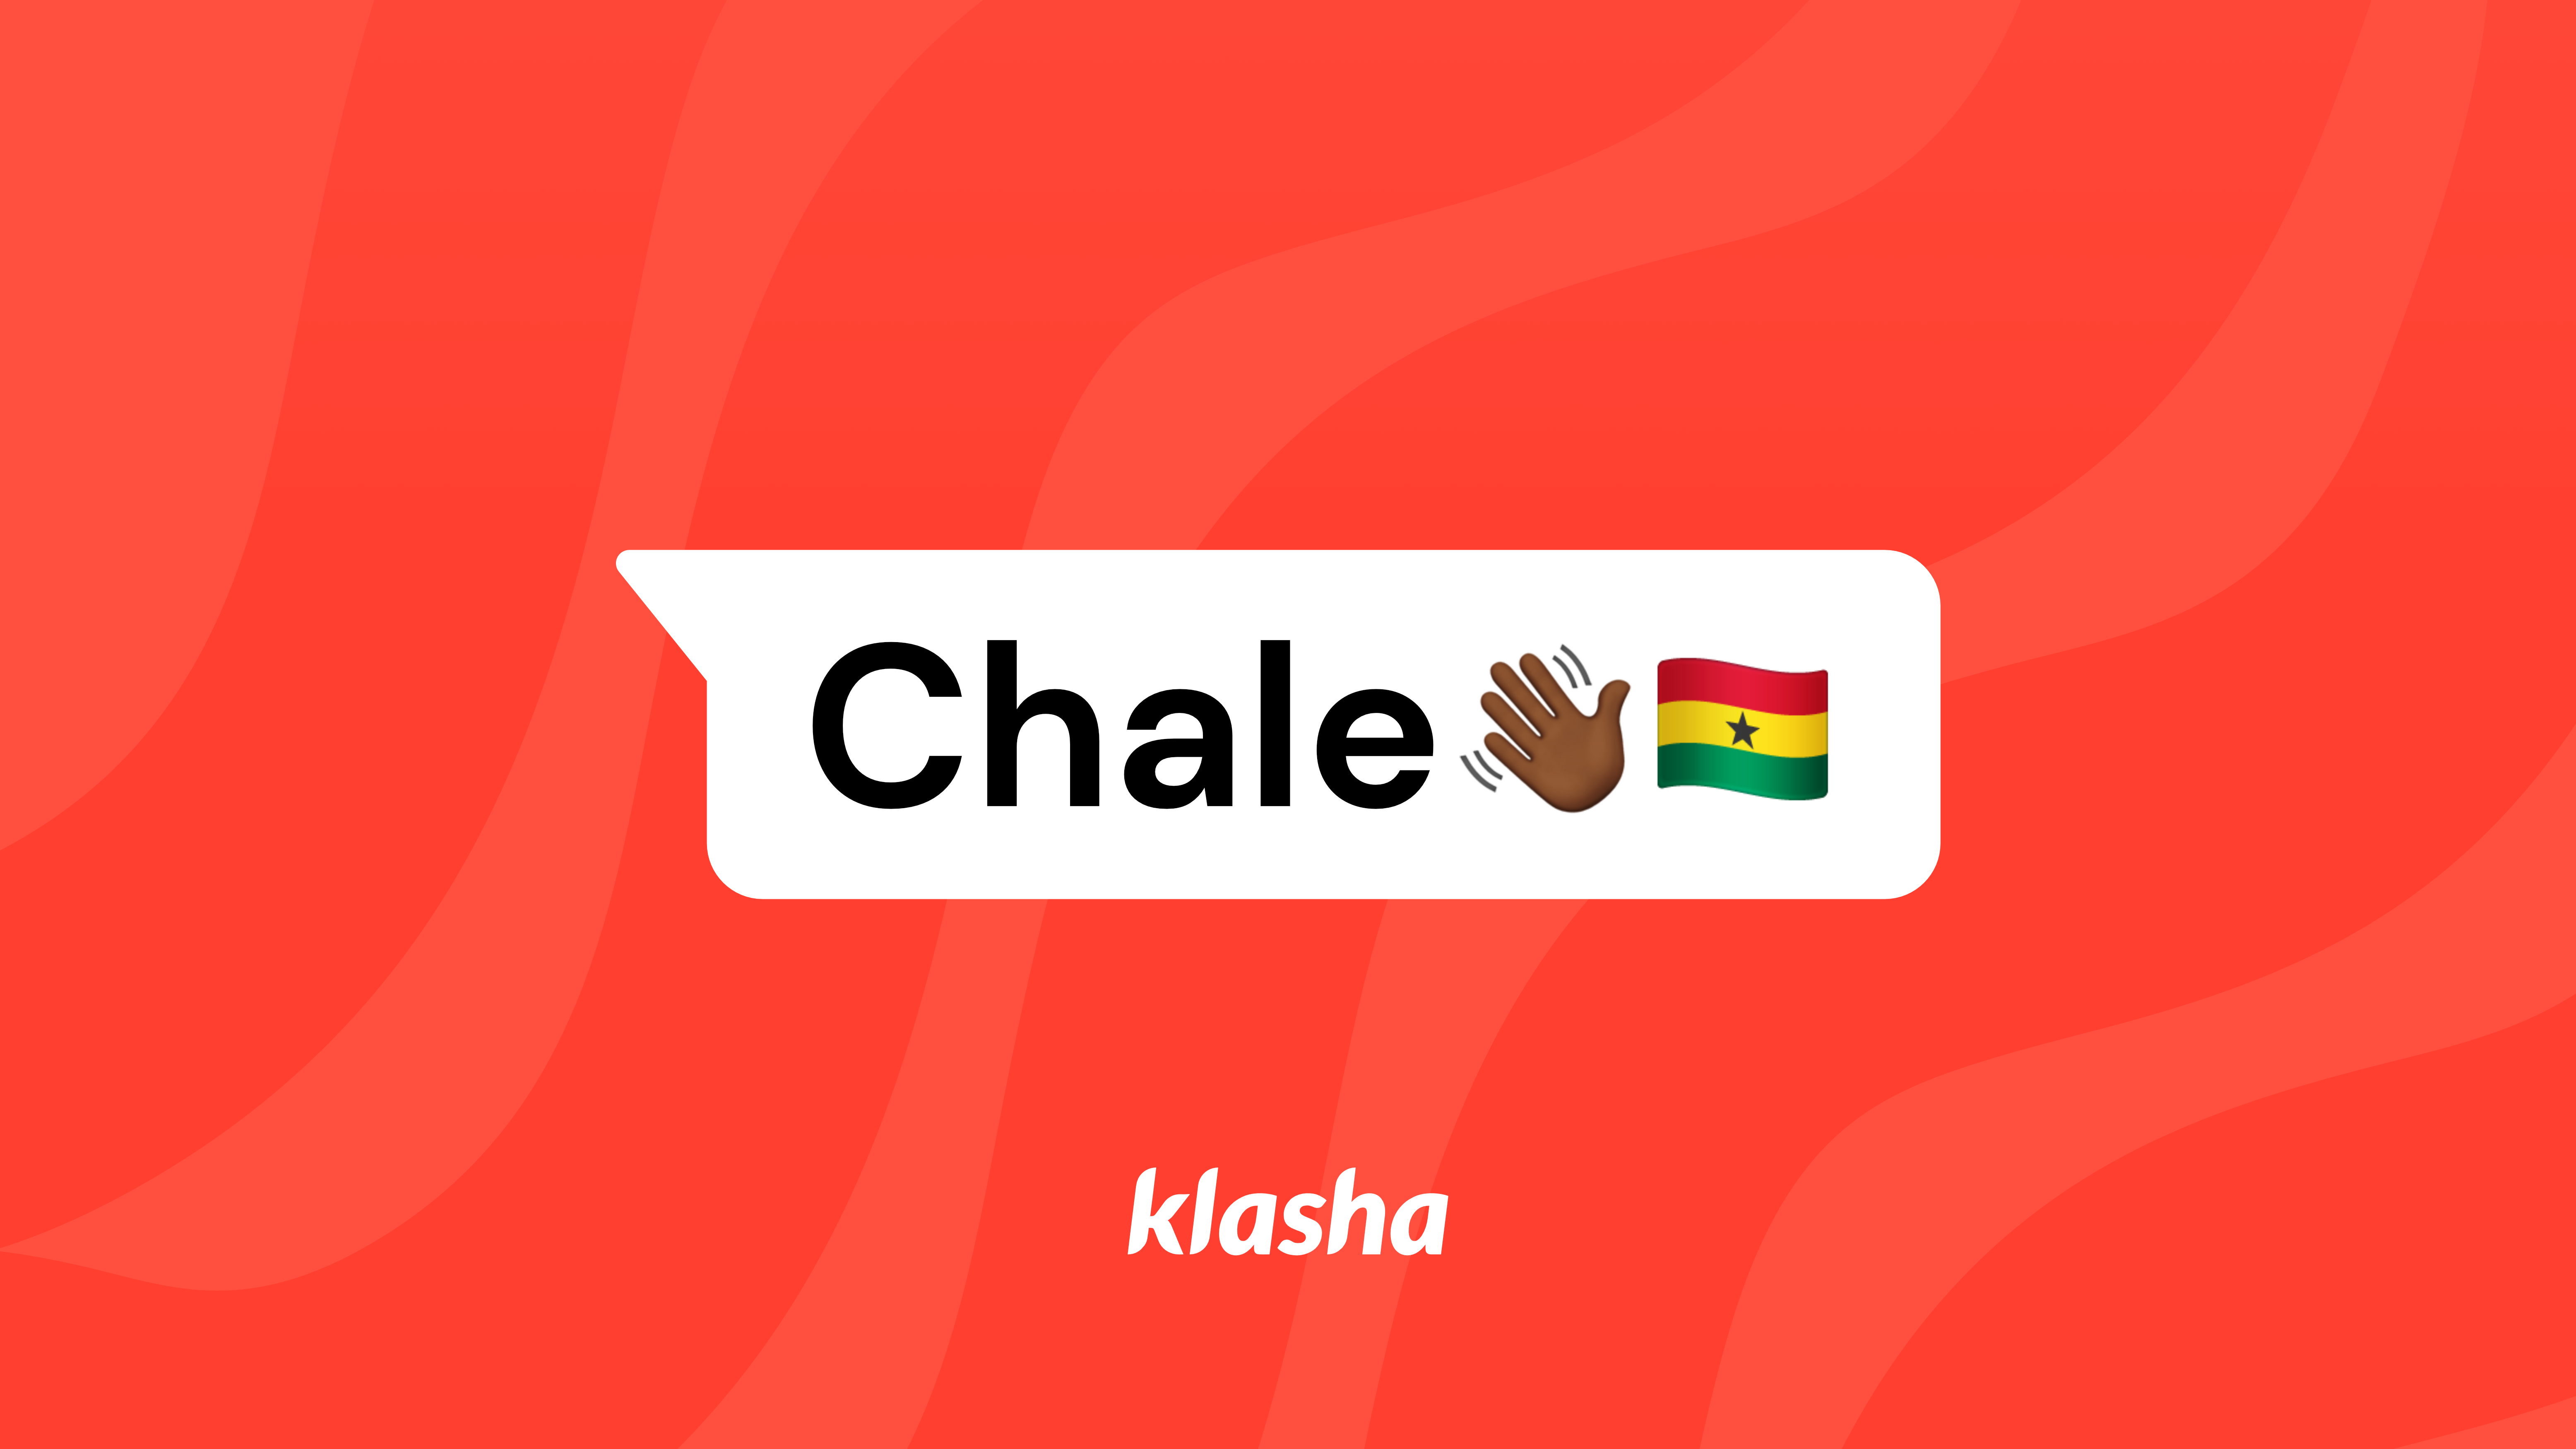 Klasha expands to Ghana to facilitate frictionless online commerce and cross-border payments